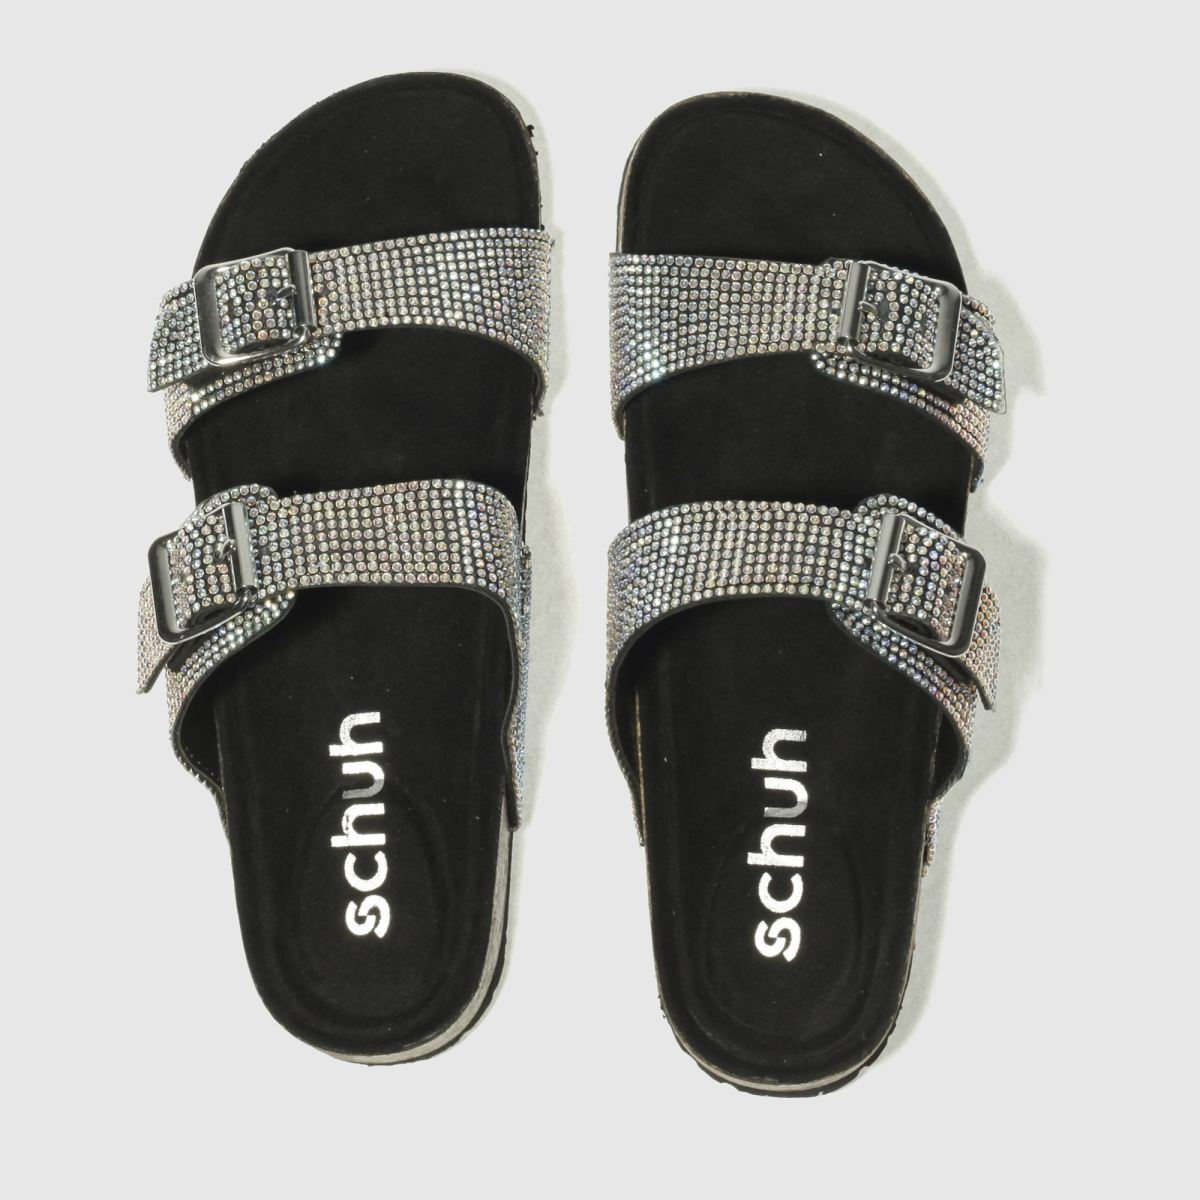 Schuh Black & Silver Sunny Day Sandals